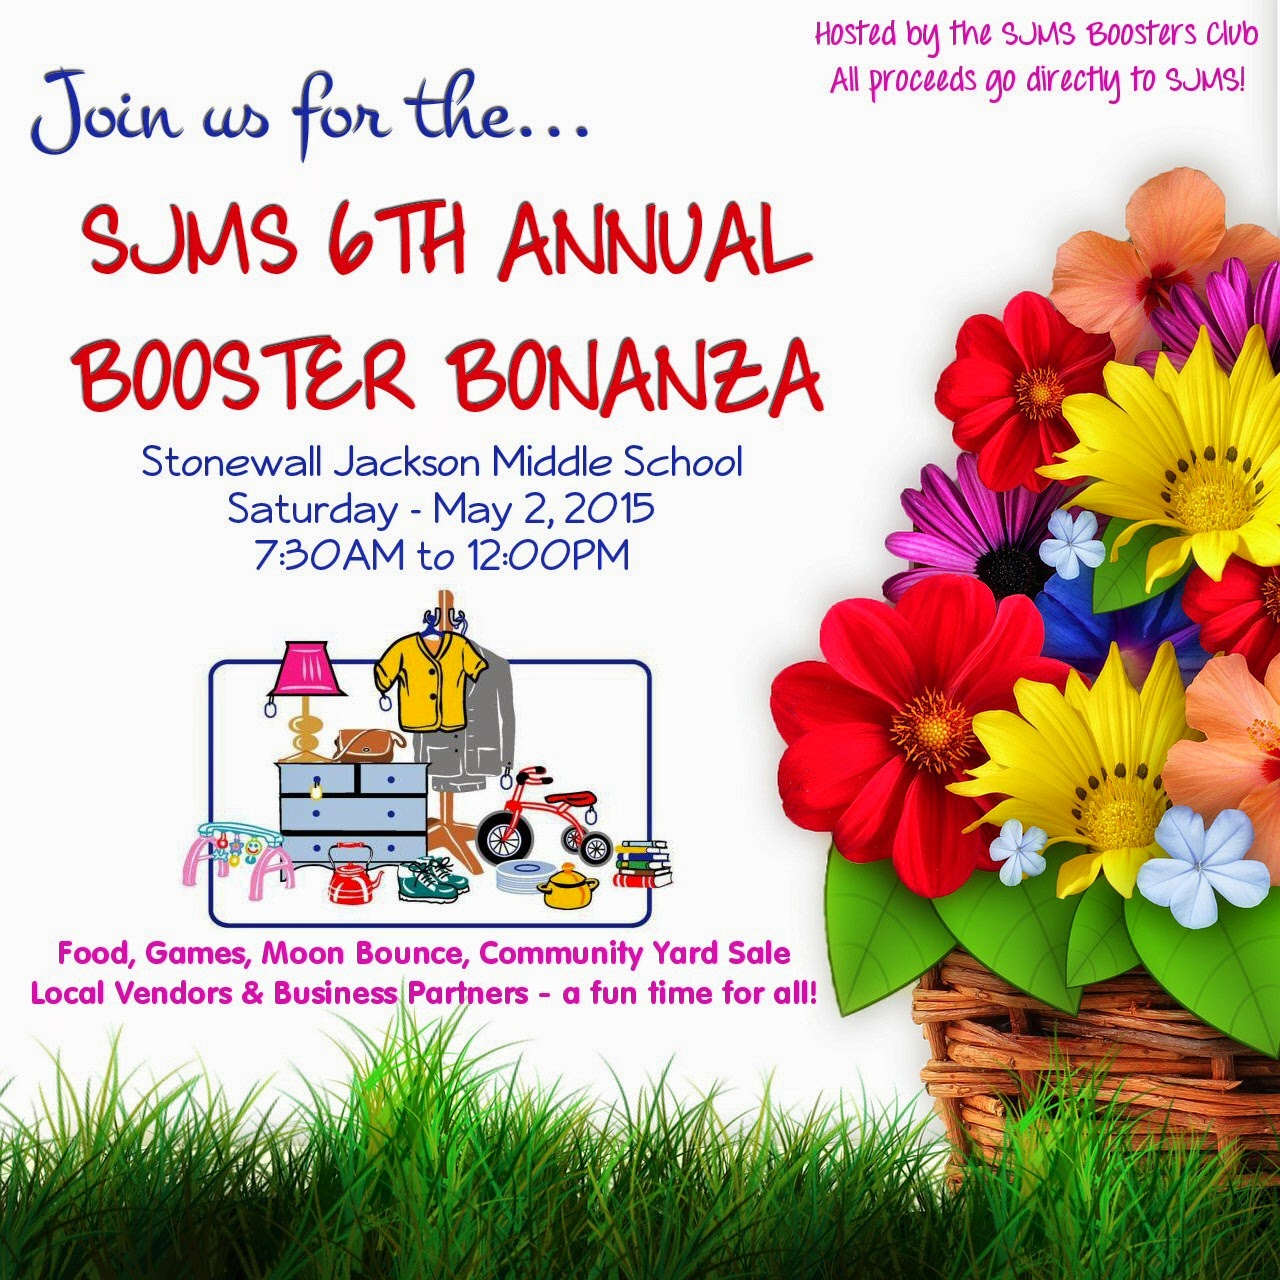 SJMS Boosters Club 6th Annual Booster Bonanza